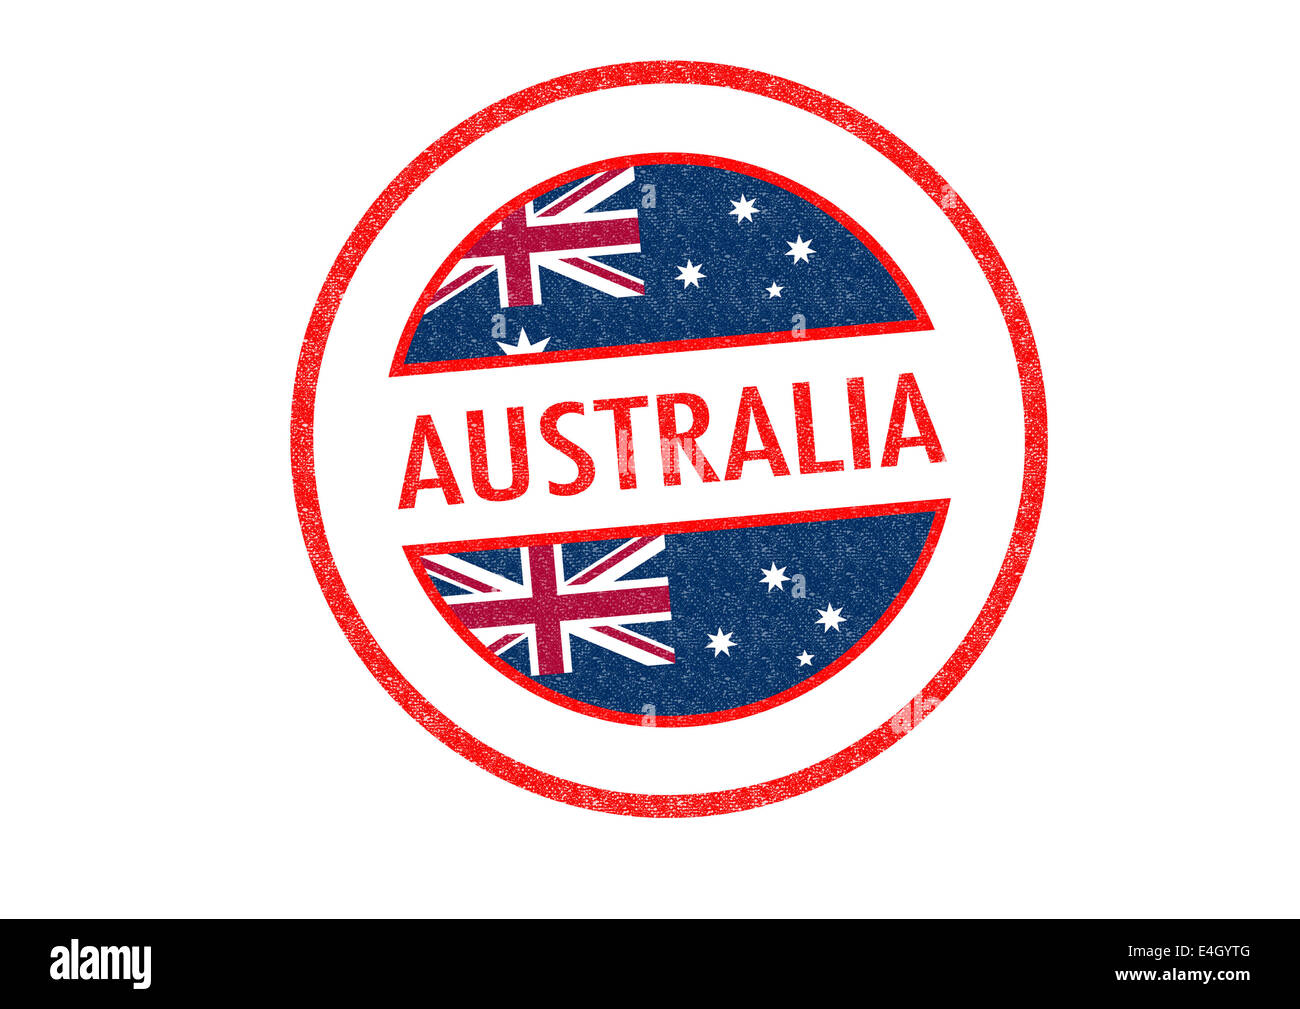 Passport Style AUSTRALIA Rubber Stamp Over A White Background